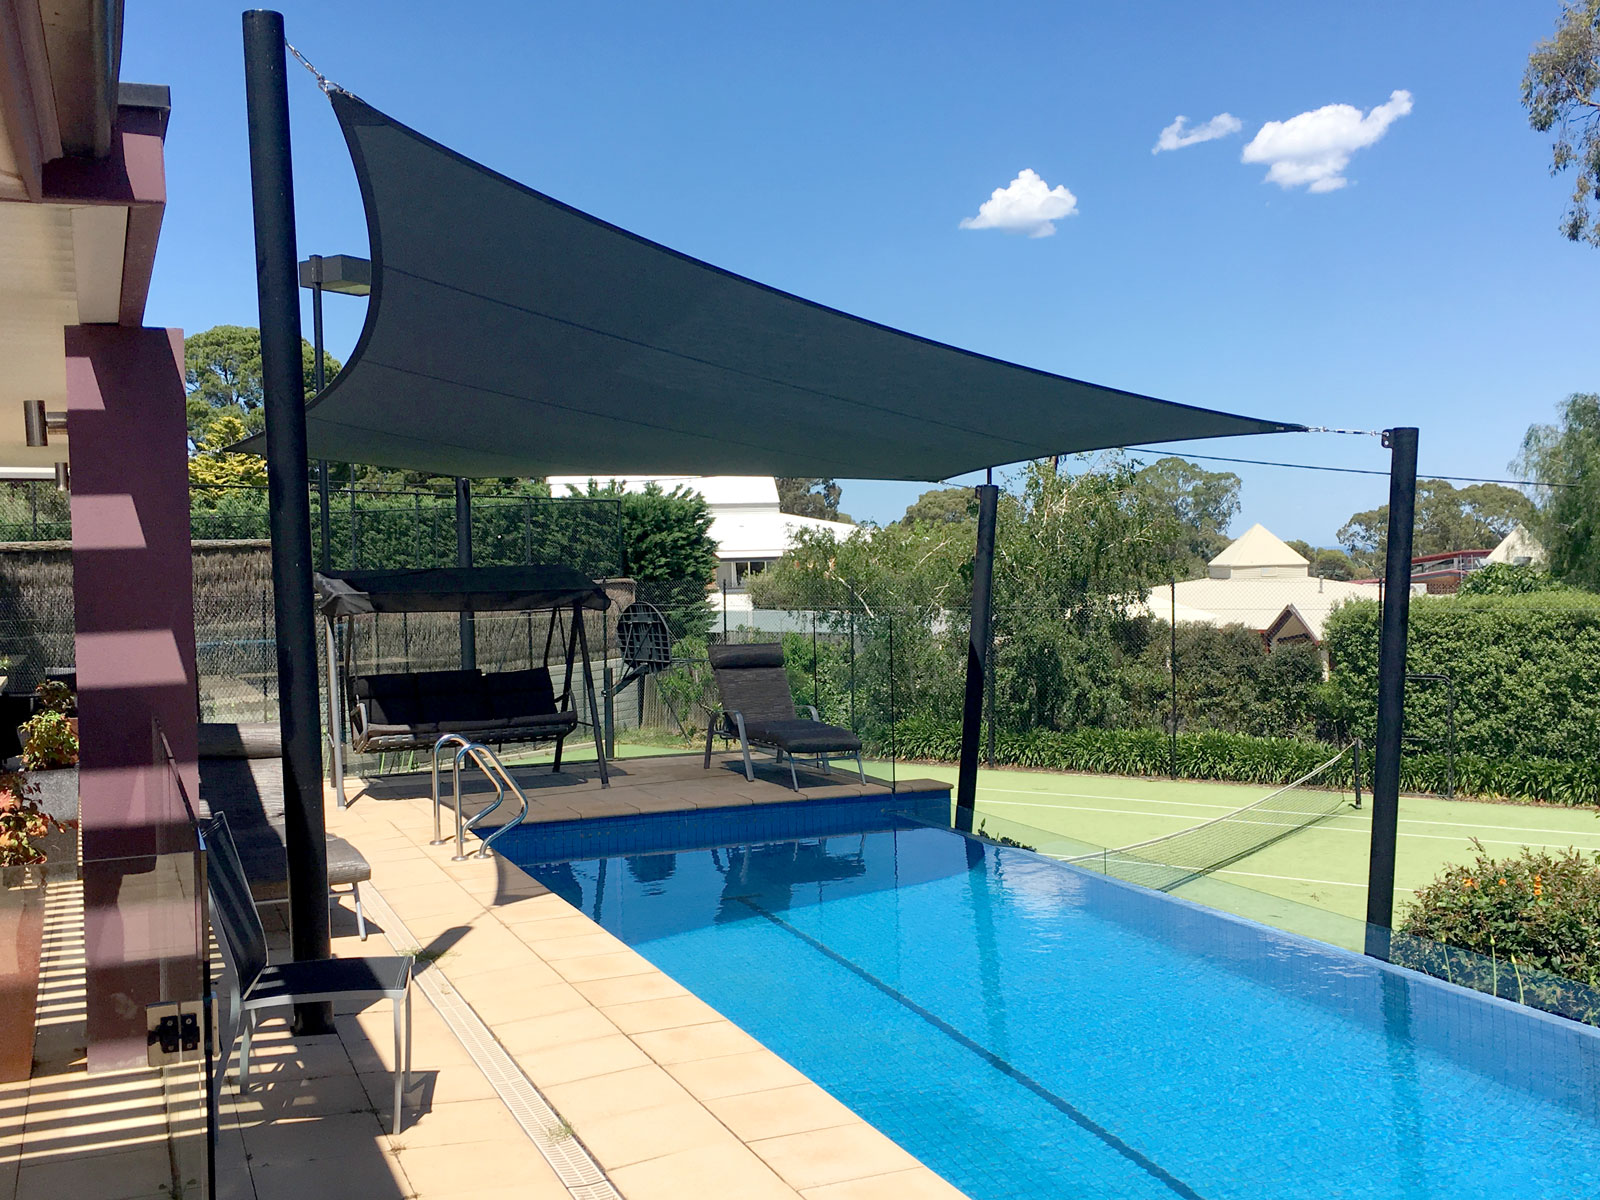 How to Best Shade Your Pool (Summer 2019) – Shadeform Blog